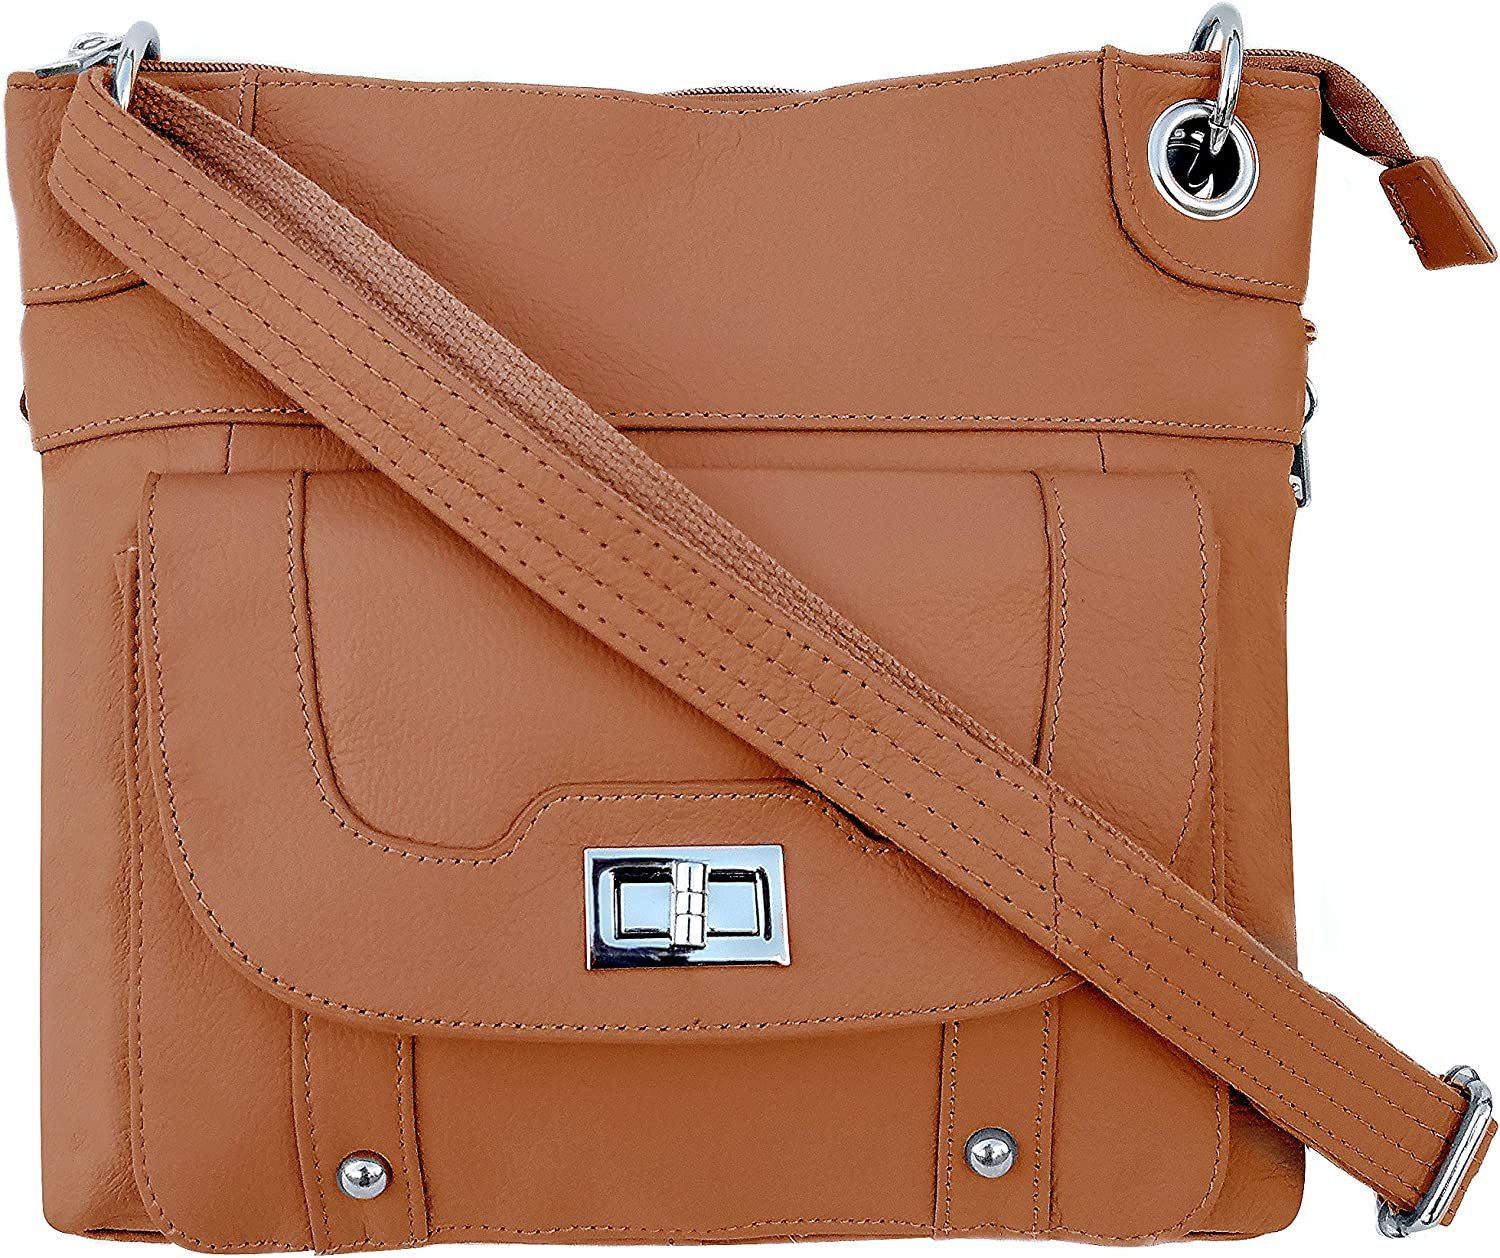 Ladies' Gun Concealment Crossbody Bag